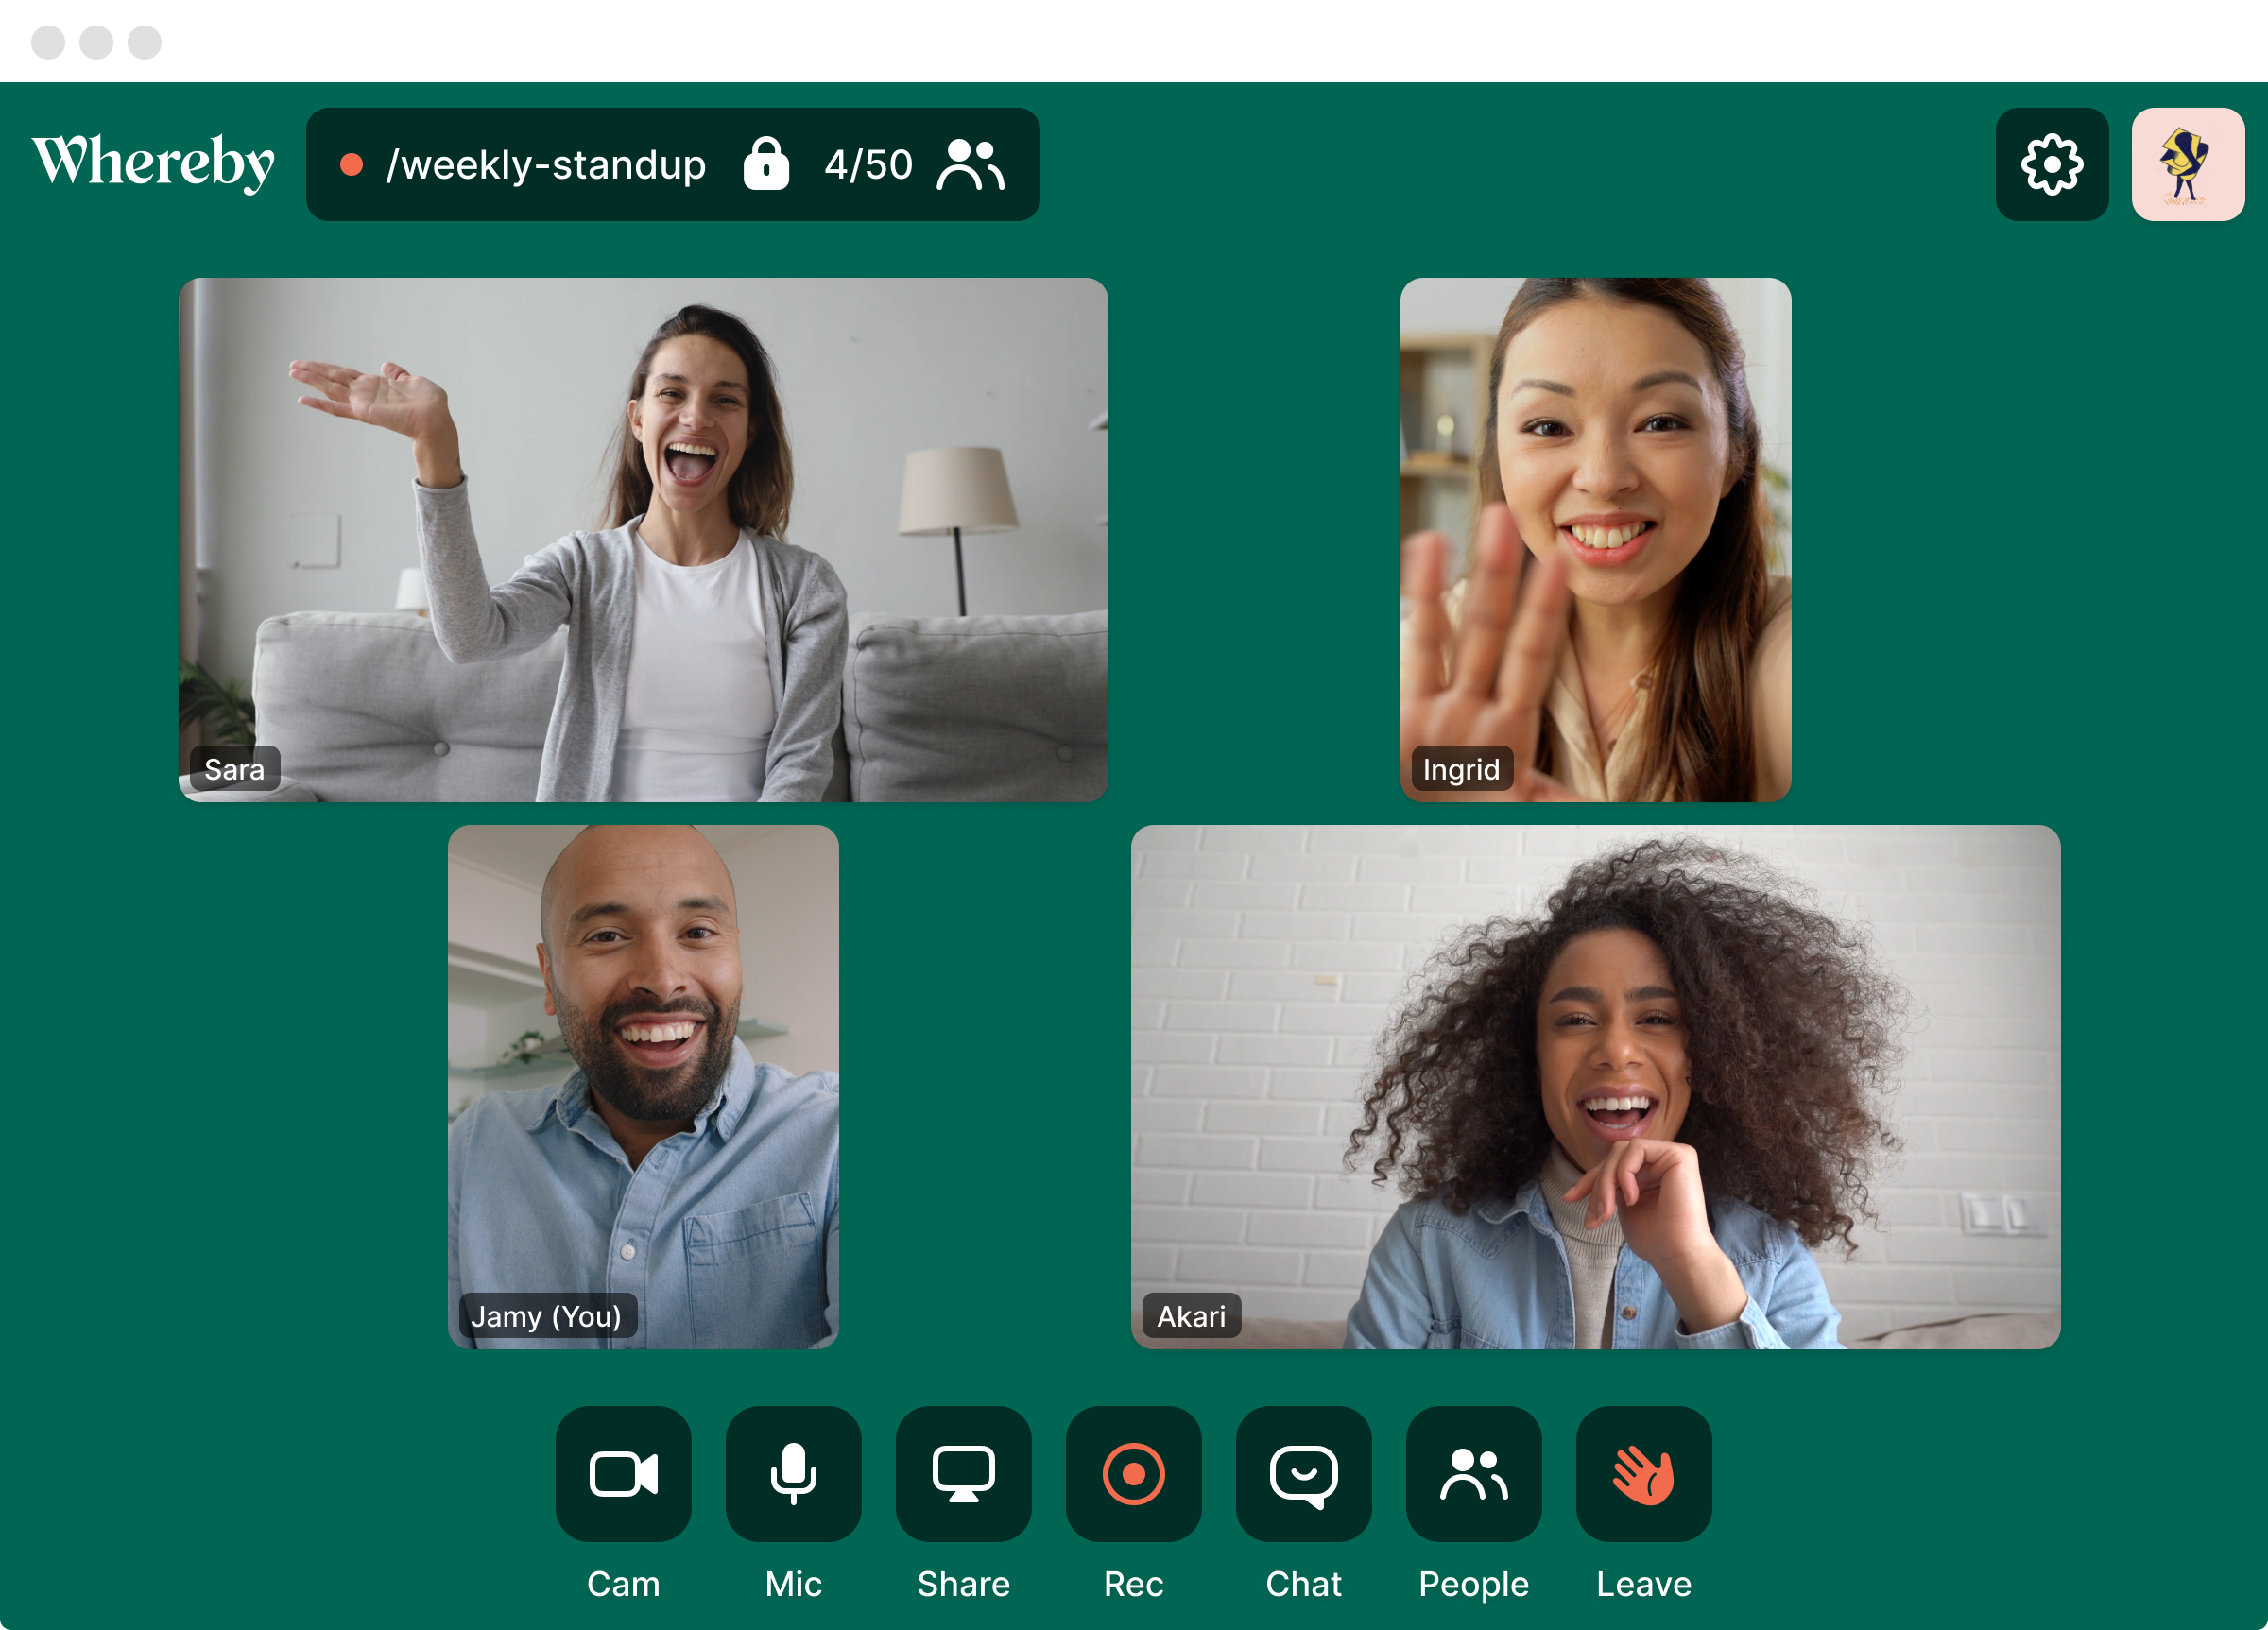 The easiest way to run a video meeting. No apps or download. Drop a unique URL and guests can join without subscribing. All meetings can be locked.